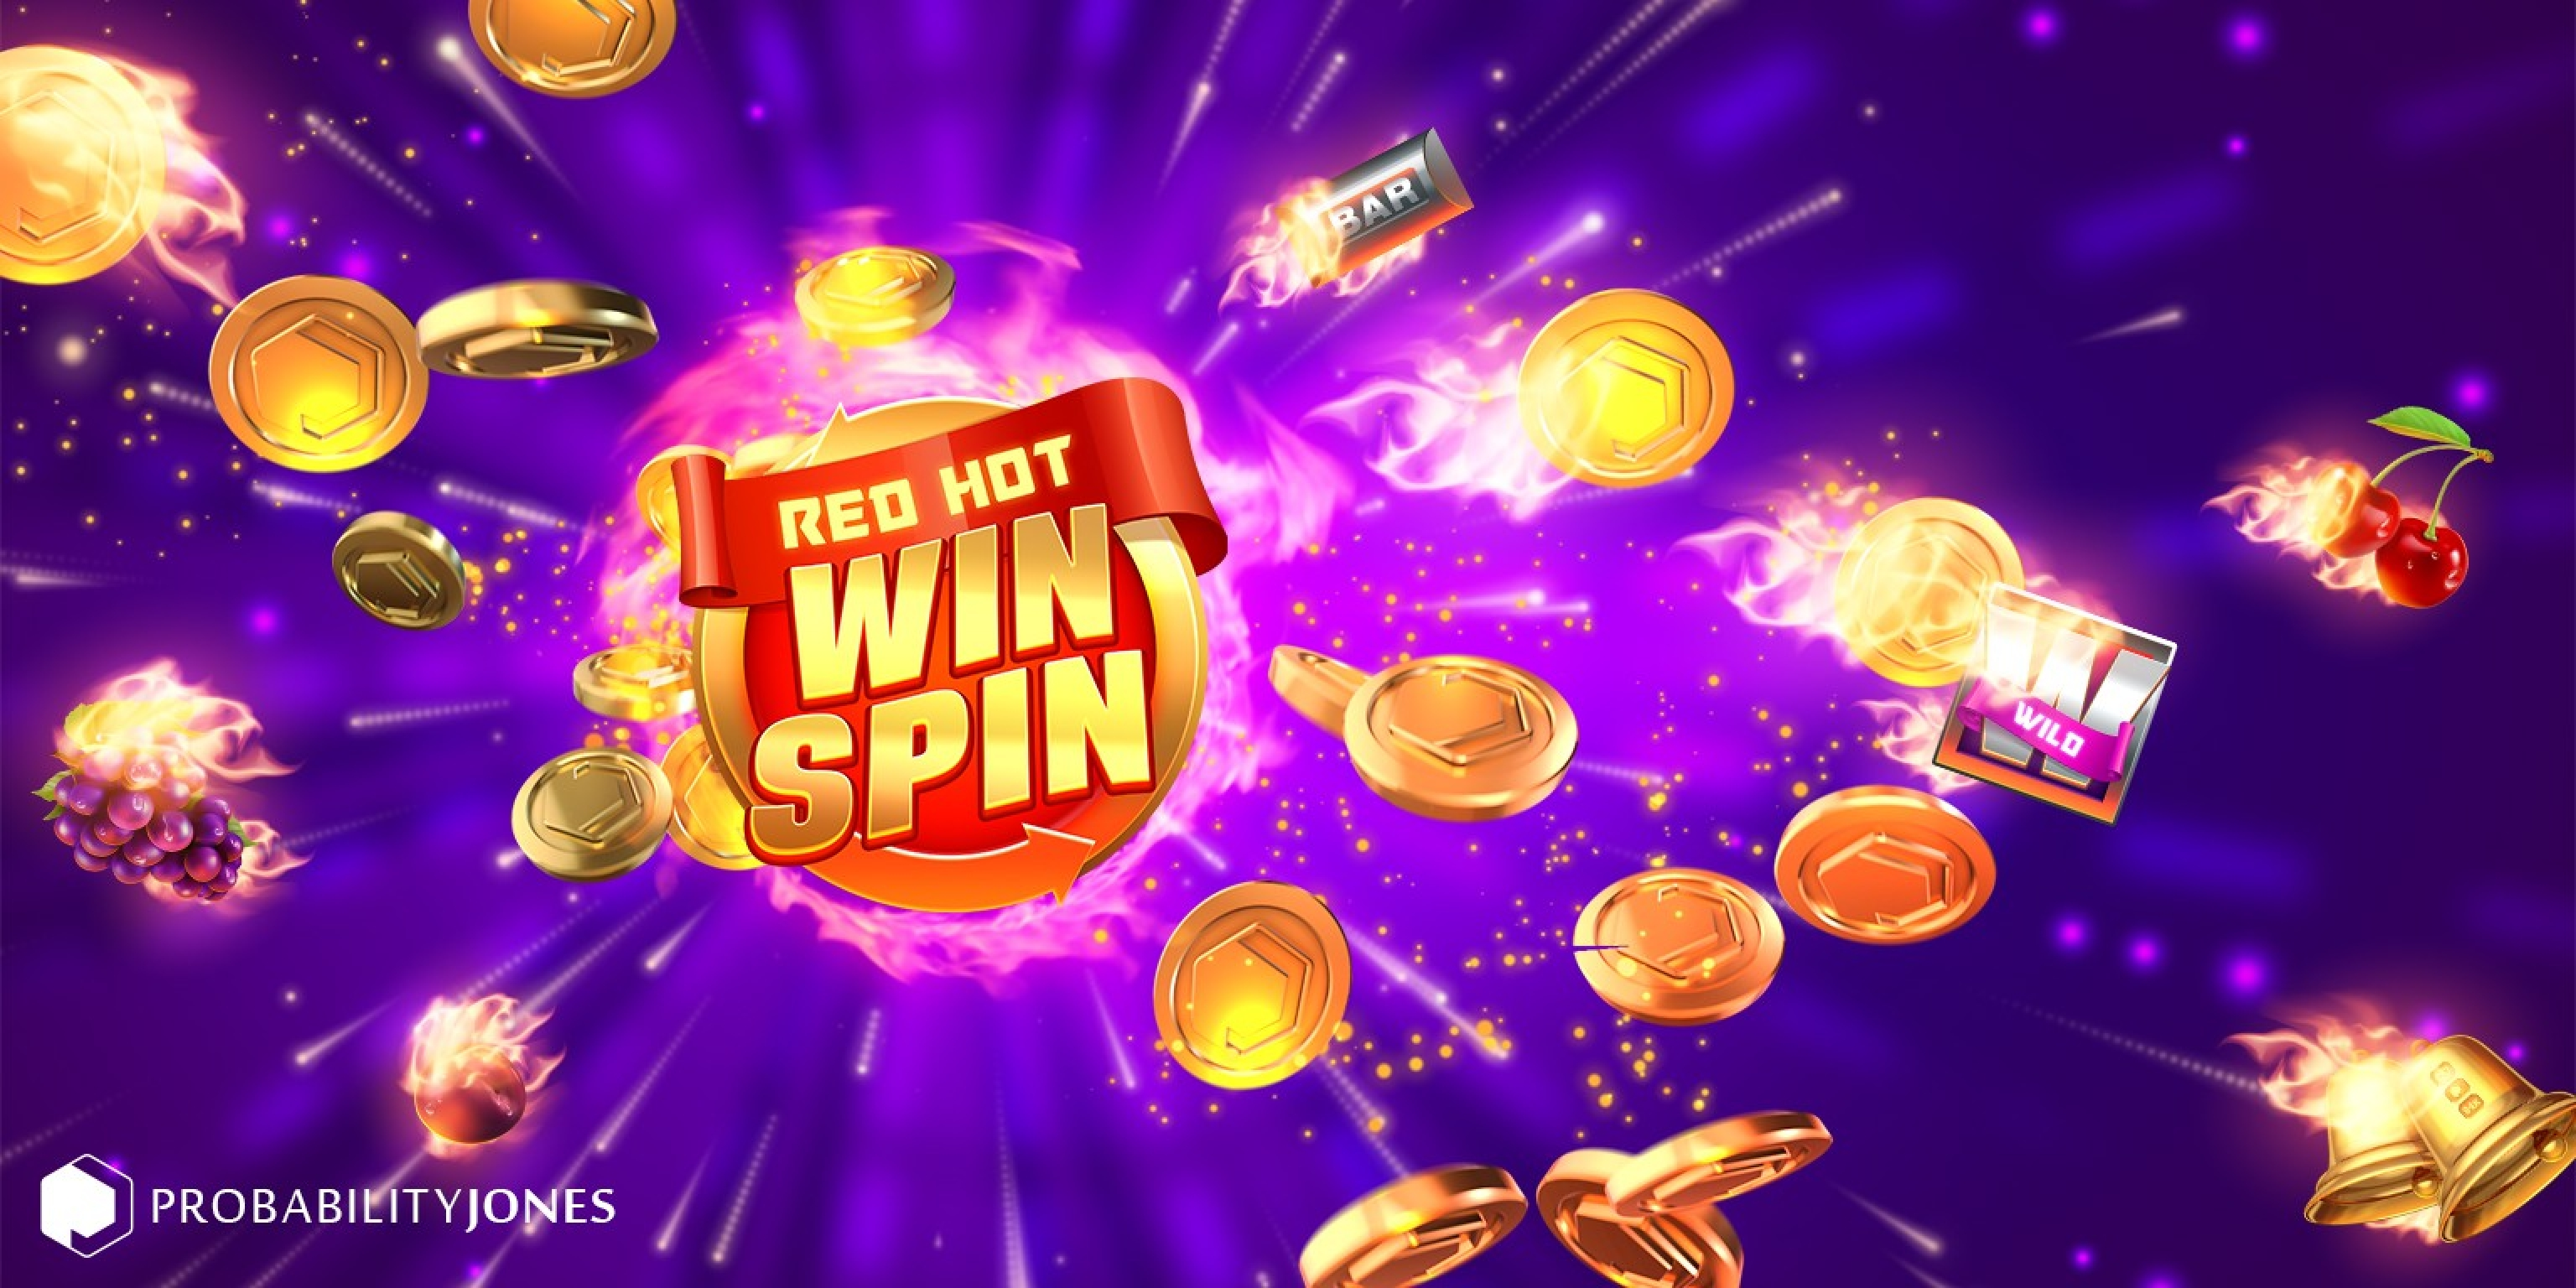 The Red Hot Win Spin Online Slot Demo Game by Probability Jones